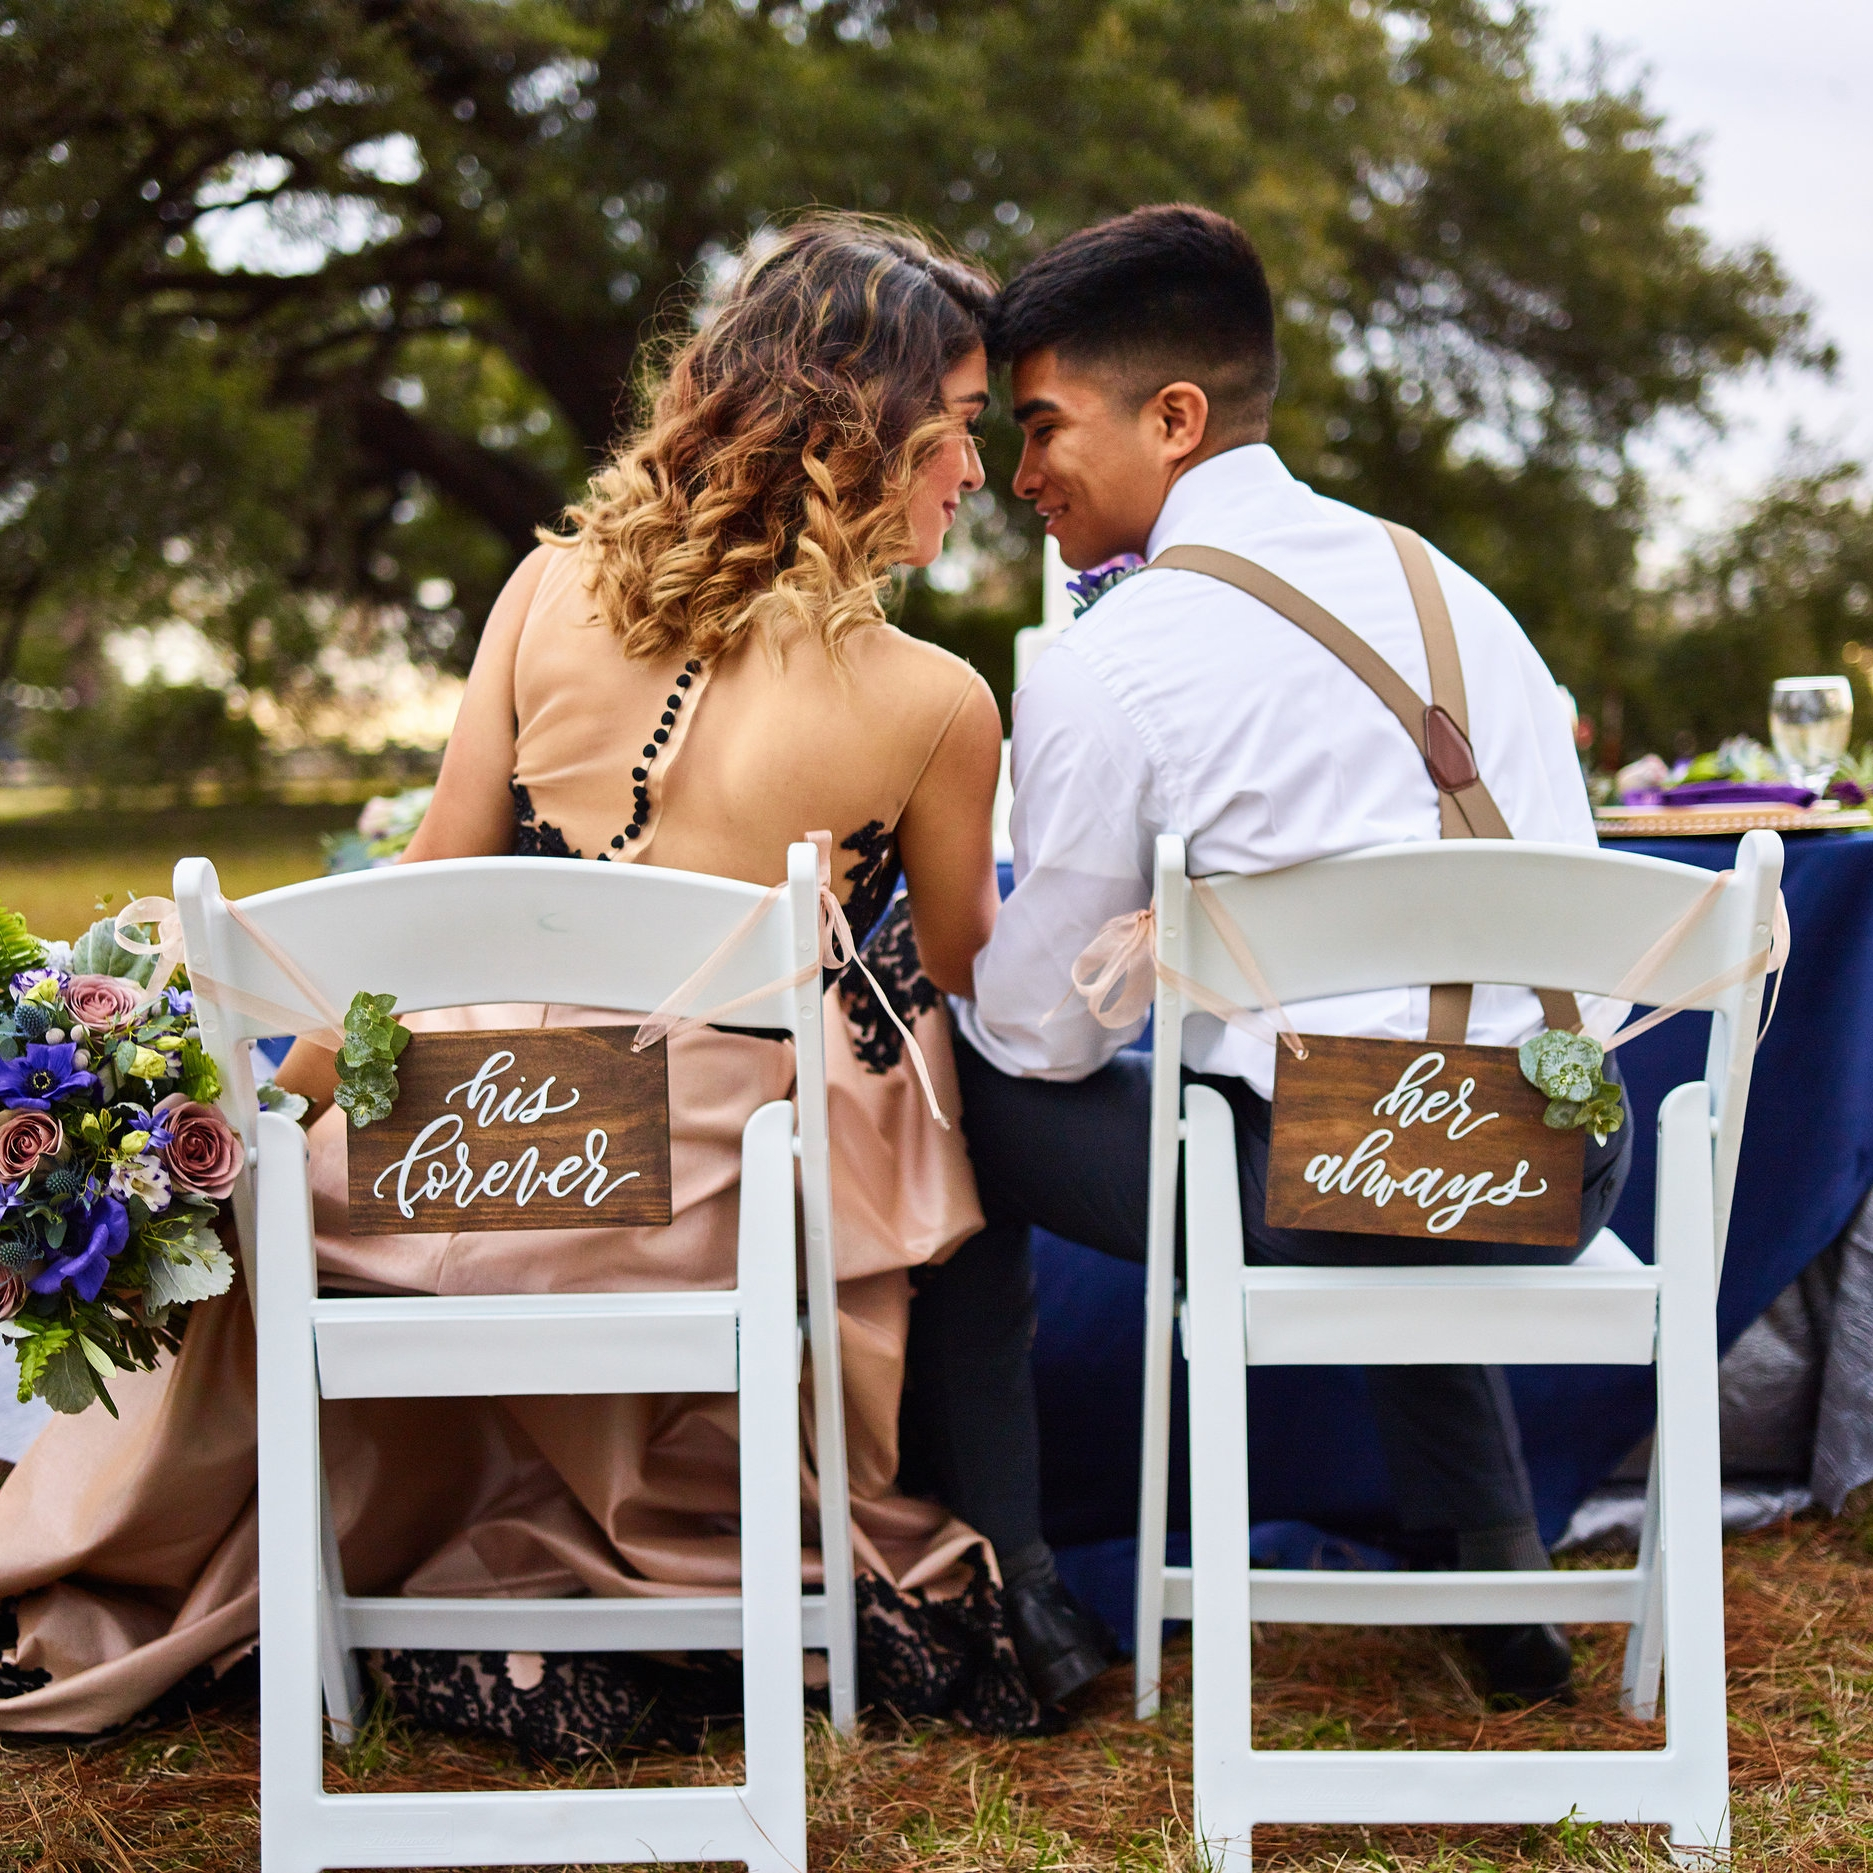 ARTSY ANTIQUE PURPLE STYLED WEDDING SHOOT  Published By:  The Vintage Herald